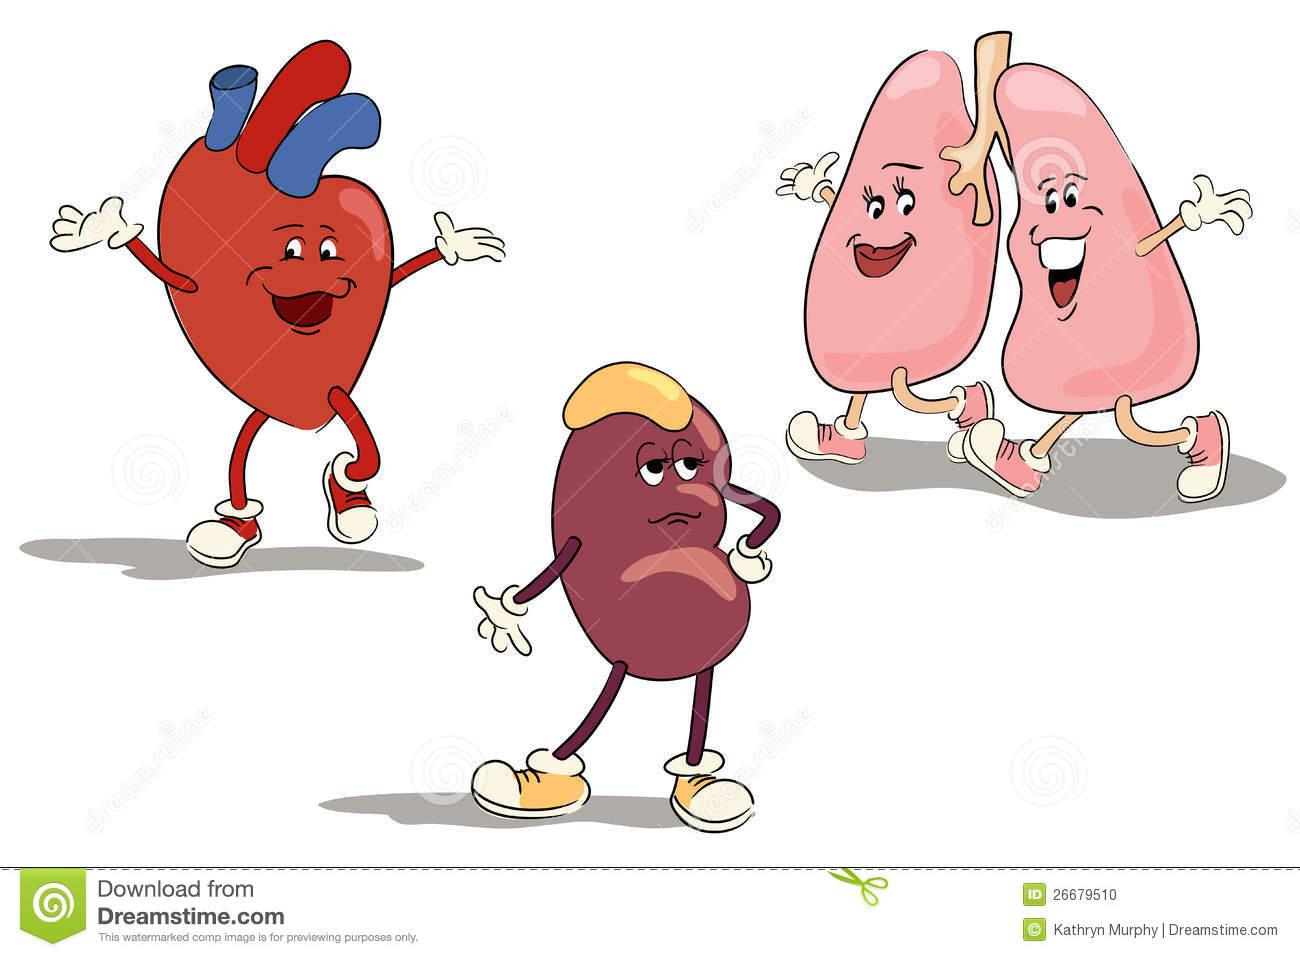 Image result for images of happy internal organs